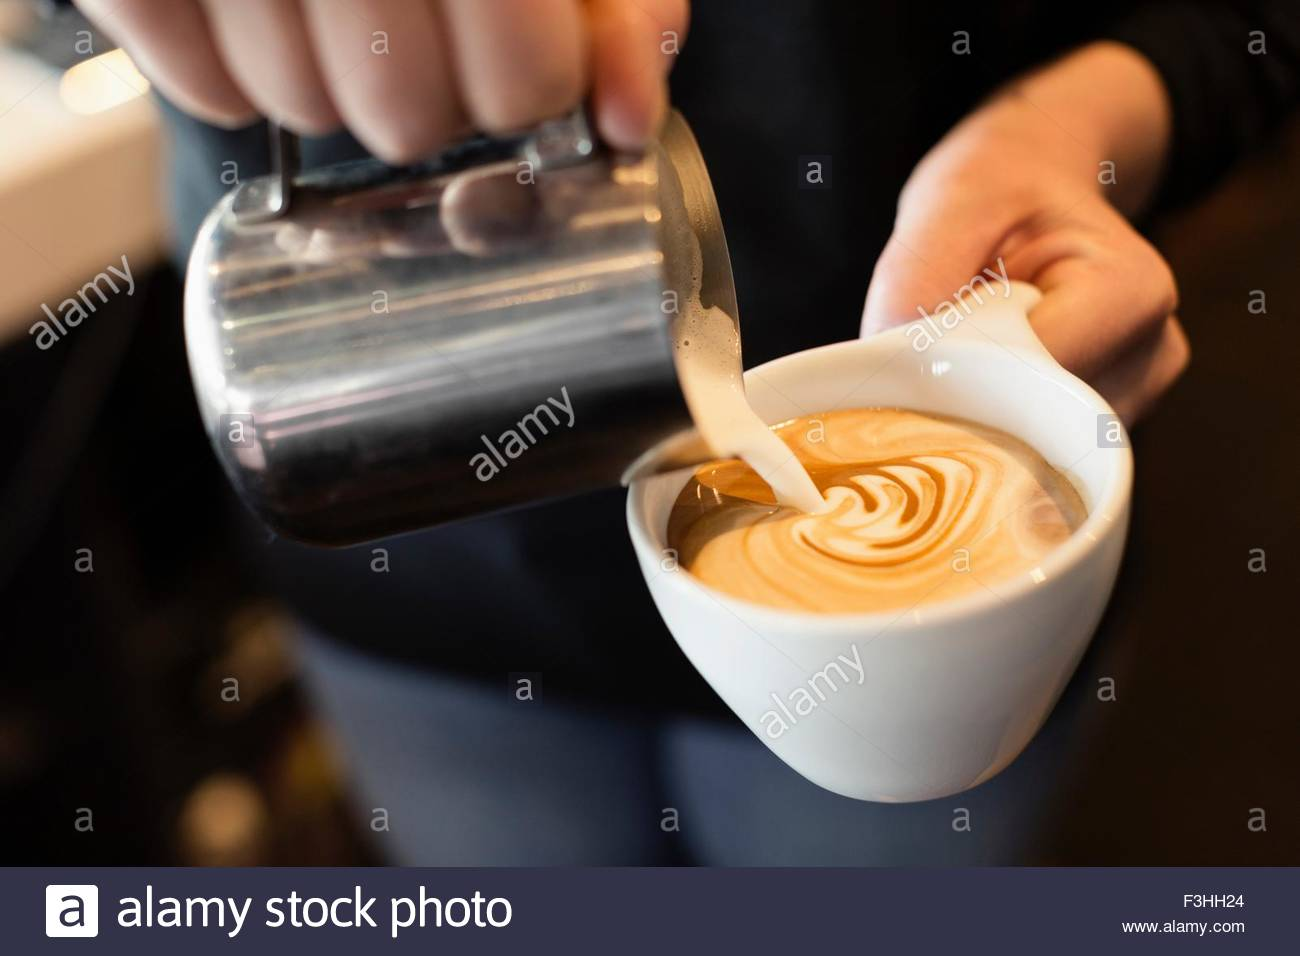 Café barista de verser le lait dans le café, mid section, close-up Banque D'Images